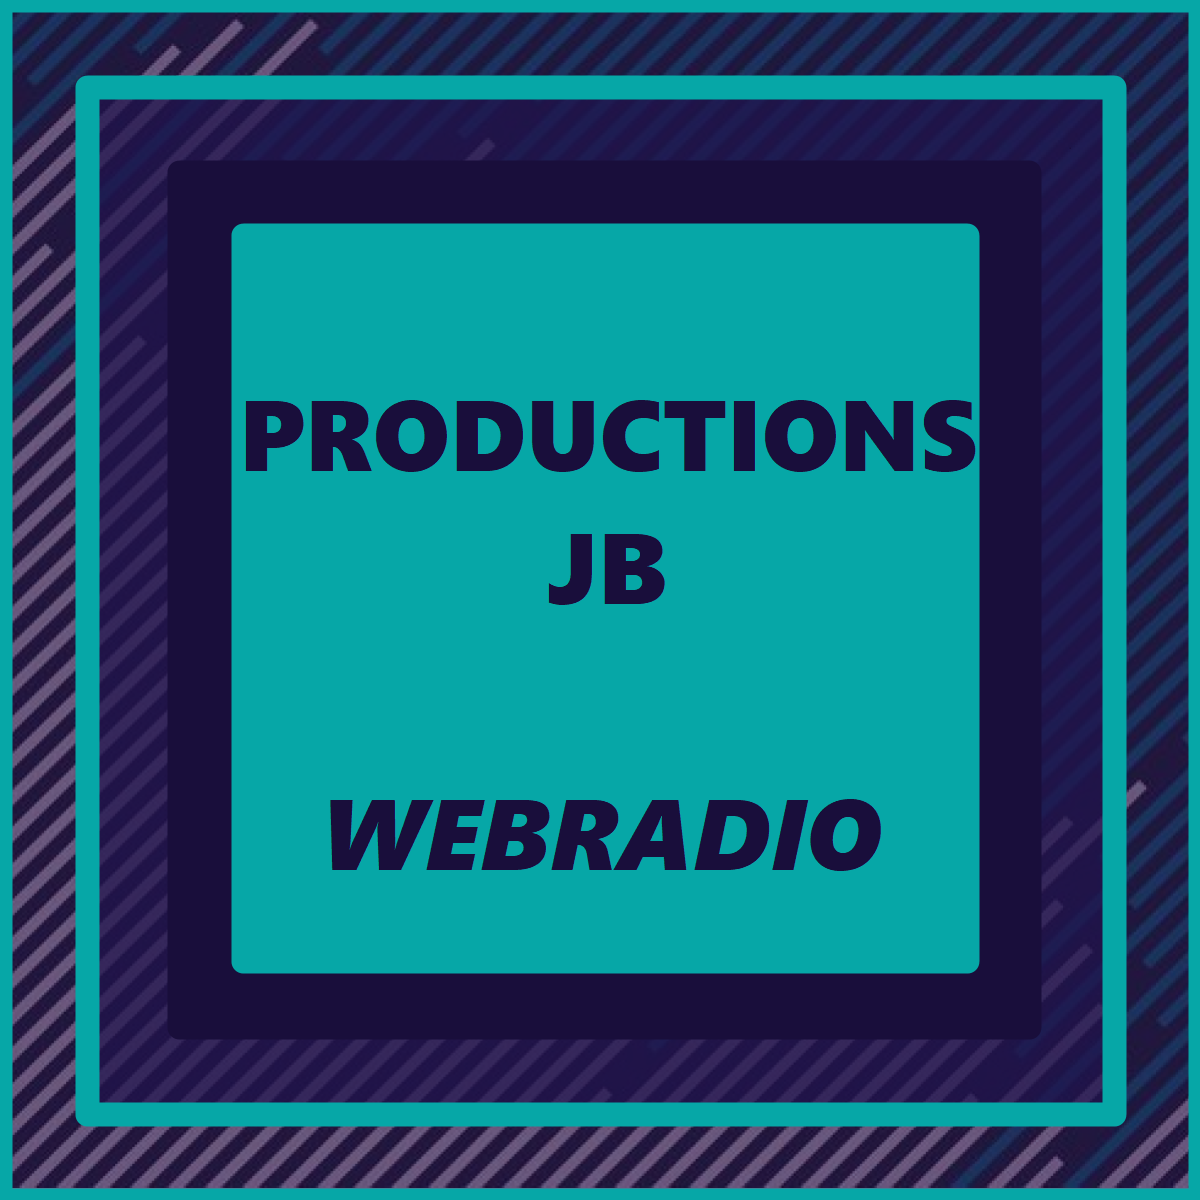 Productions JB Webradio